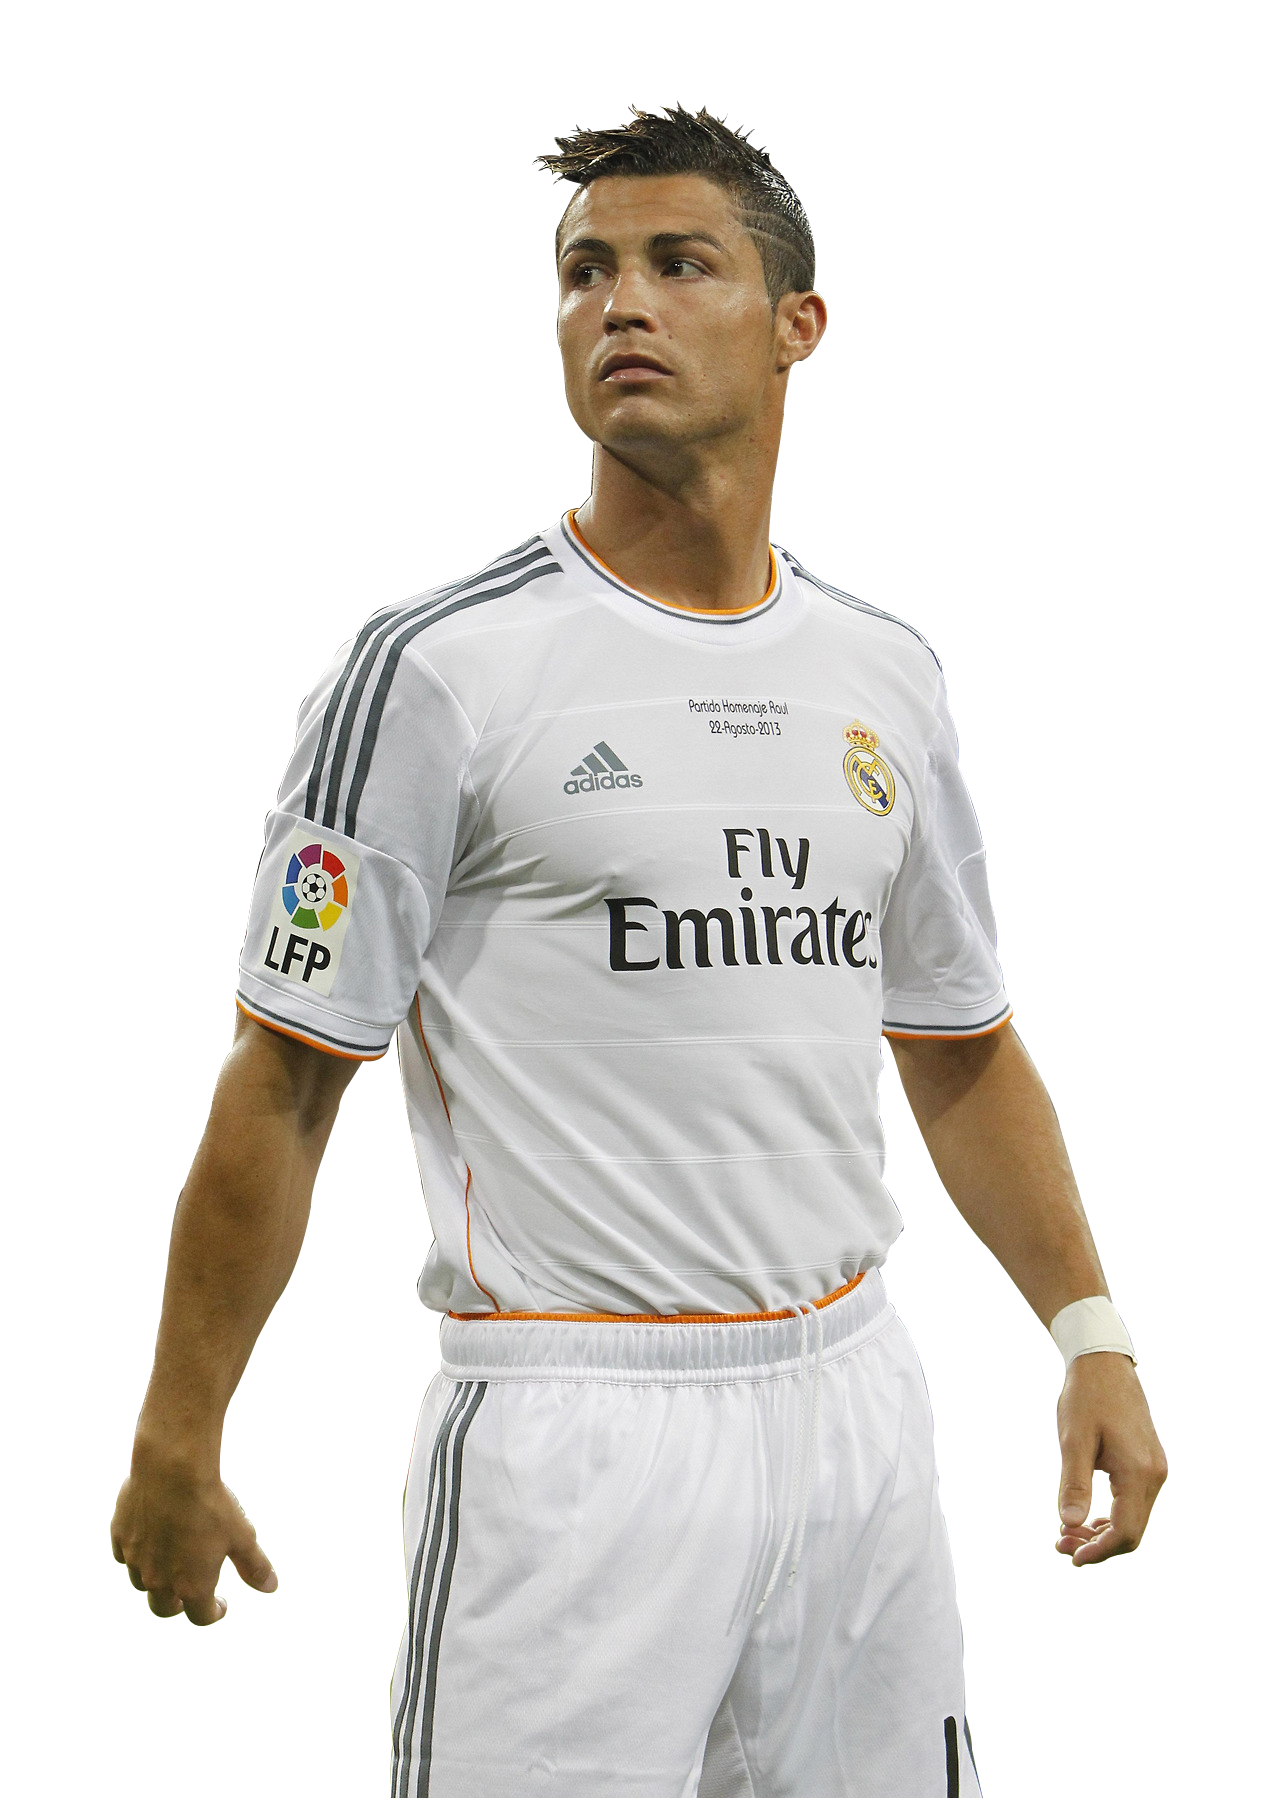 Cristiano Ronaldo Football Picture Download image #45115